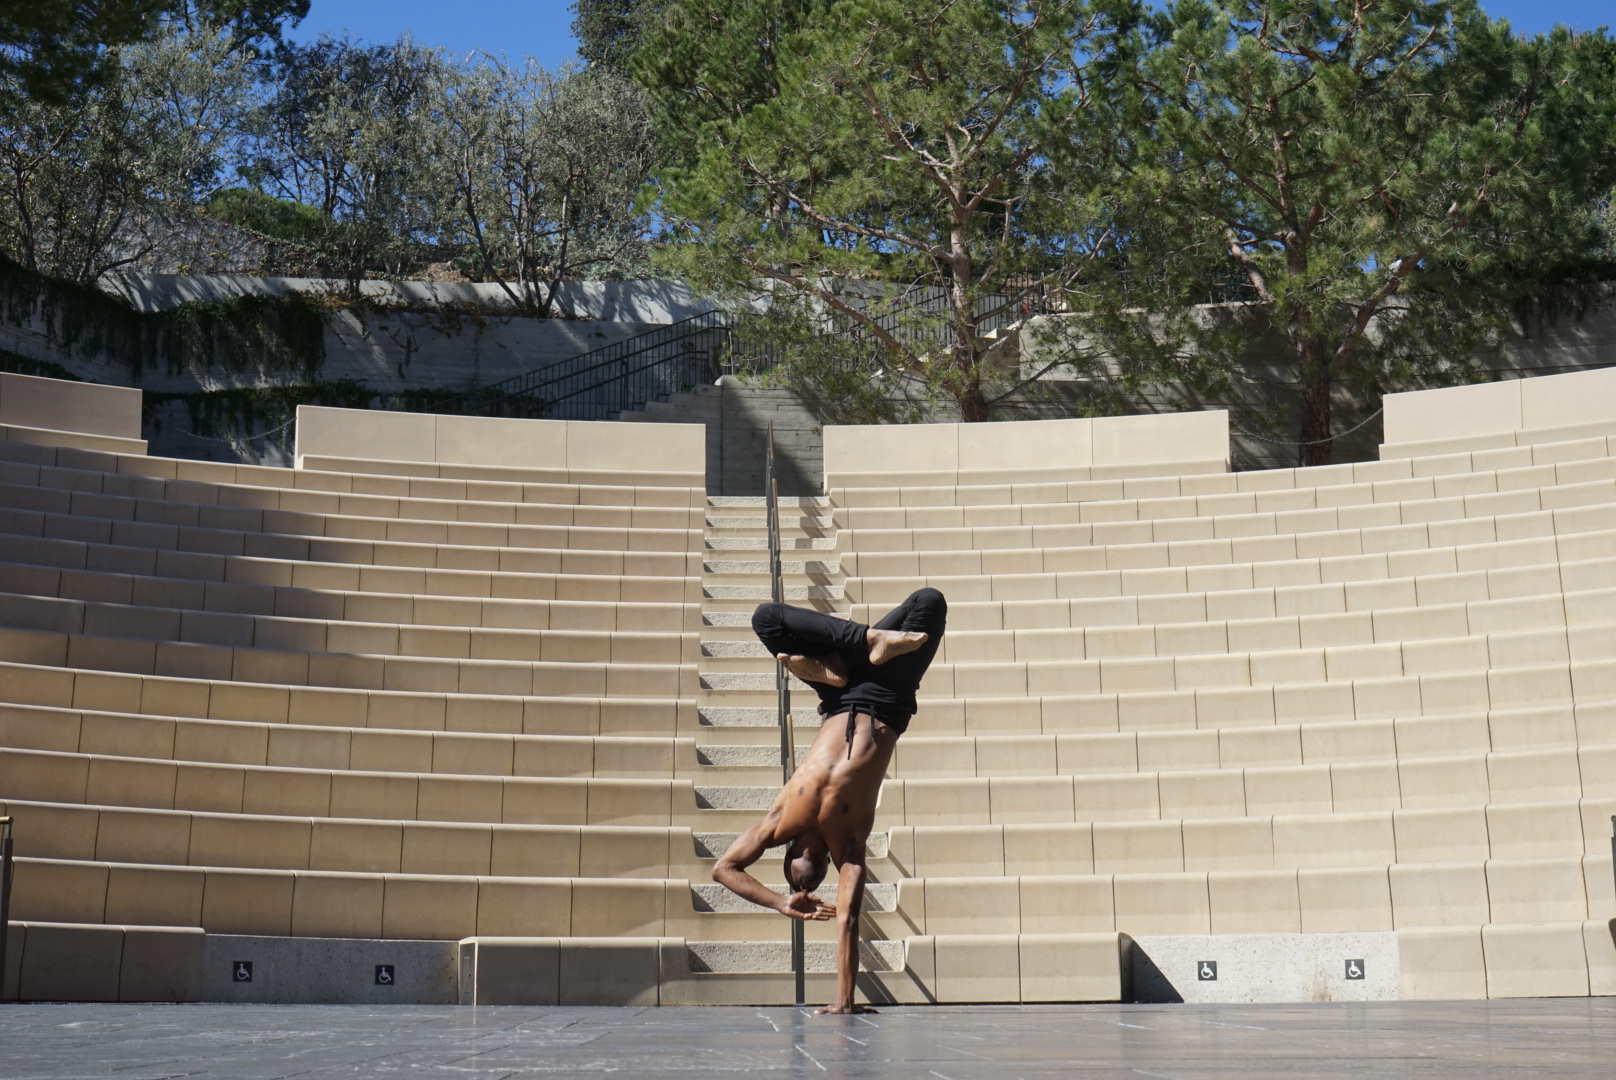 Lamonte Goode at a #CamerasandDancers meetup at the Getty Villa